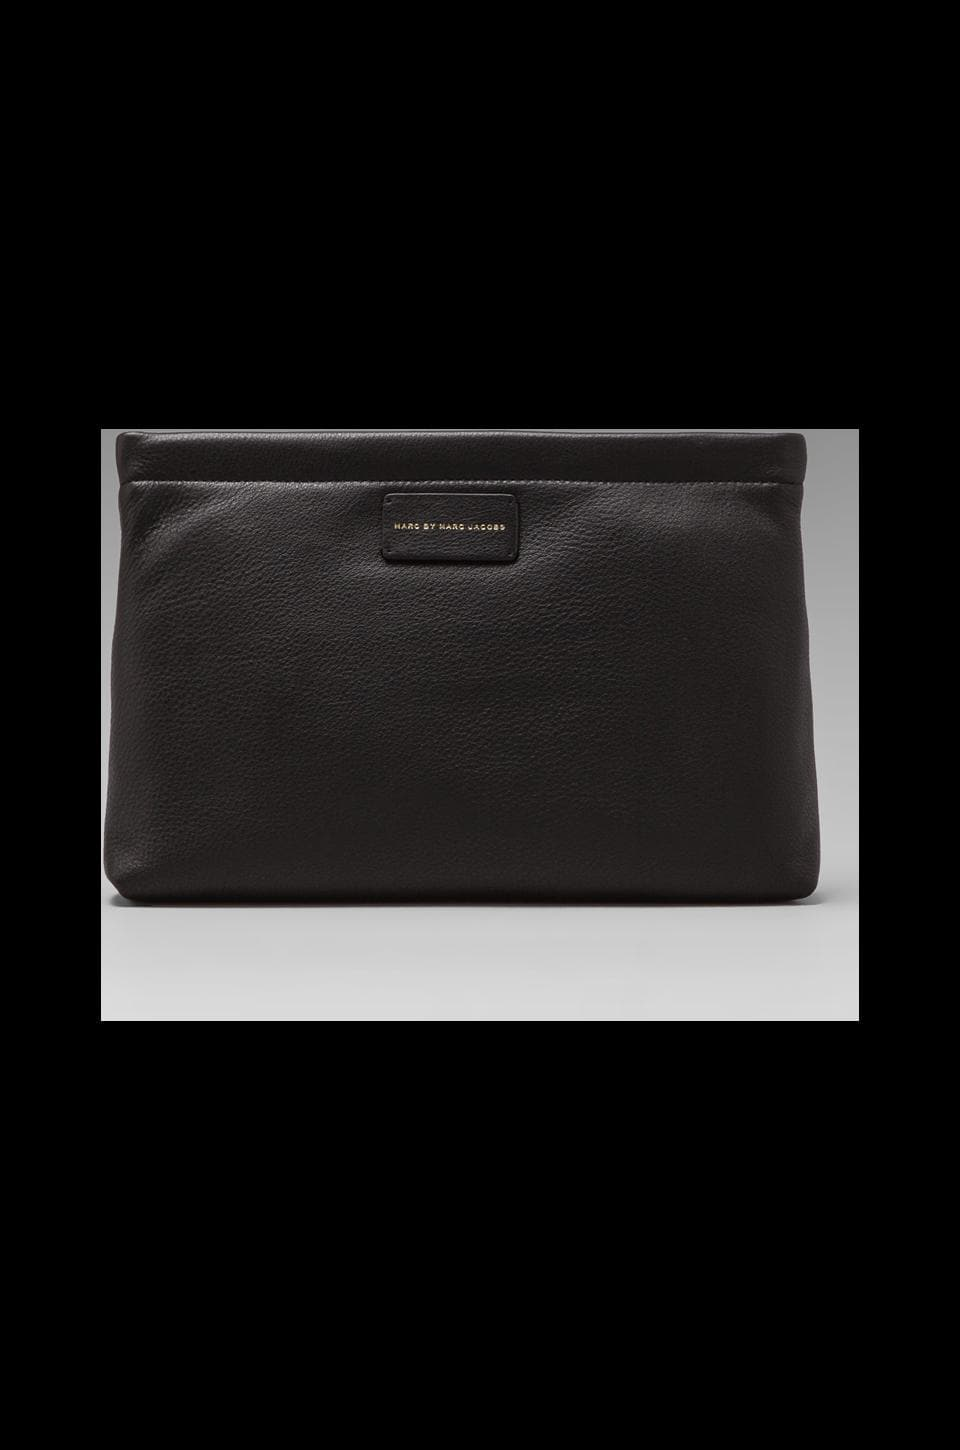 Marc by Marc Jacobs Can't Clutch this Large Clutch in Black